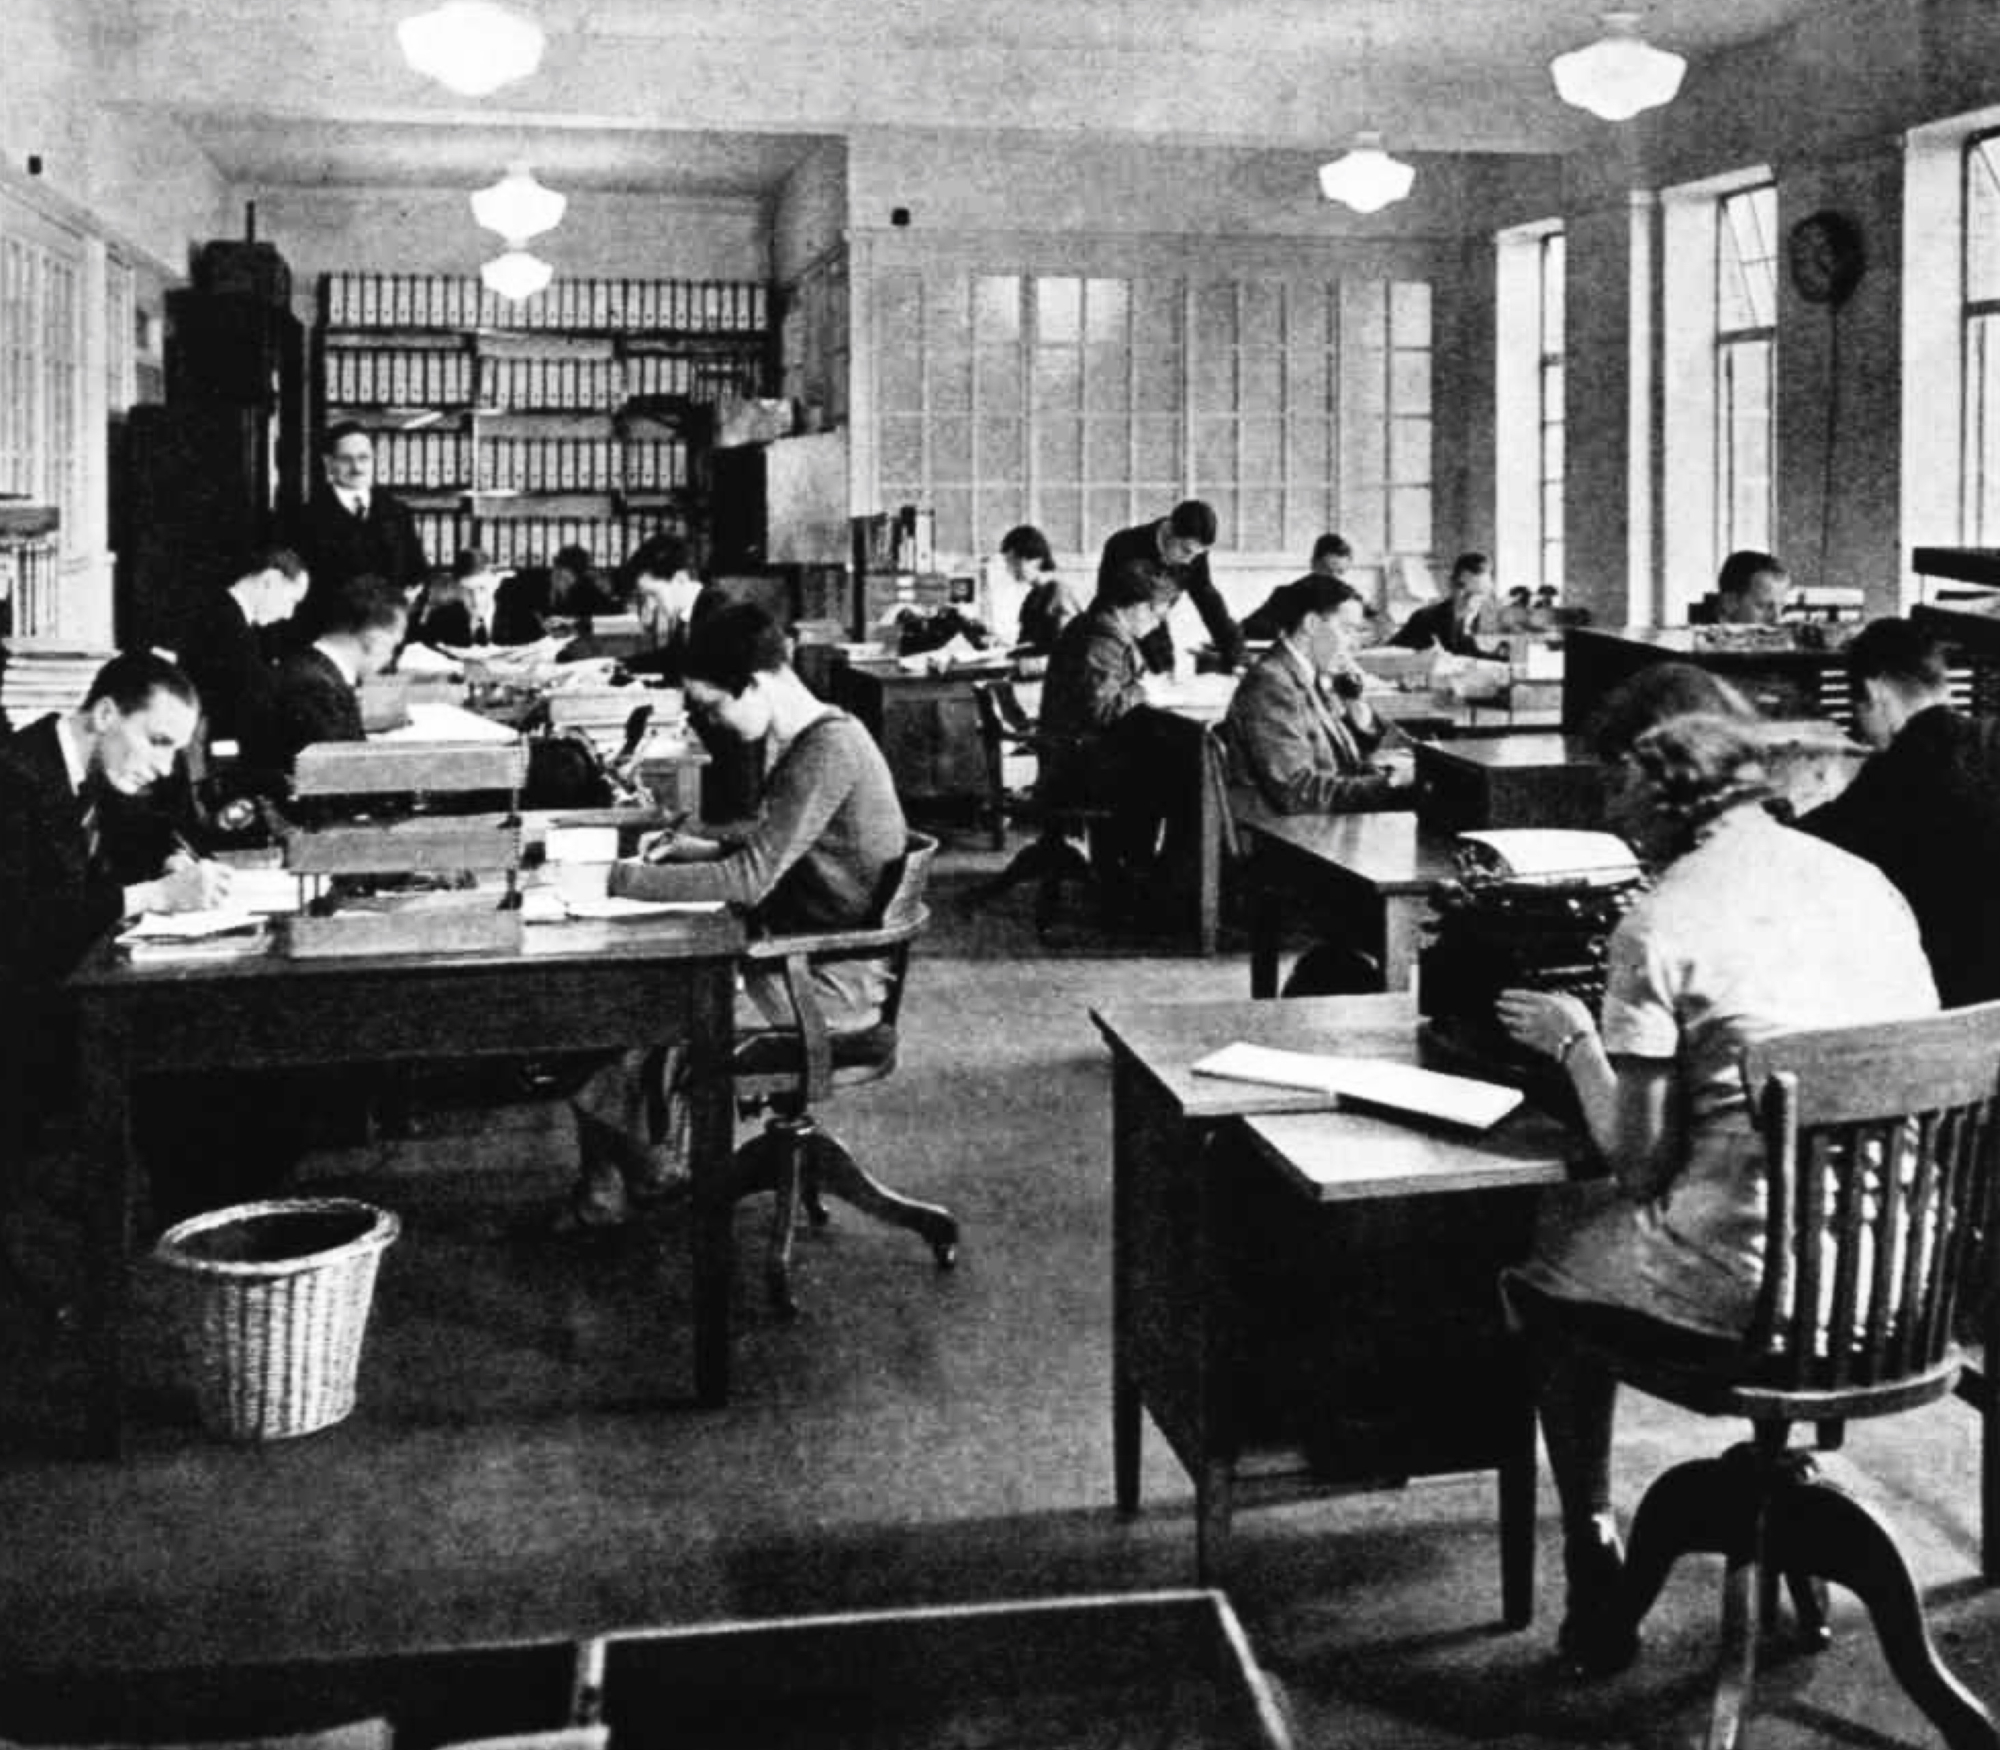 A busy office with men and women working around double-sided desks